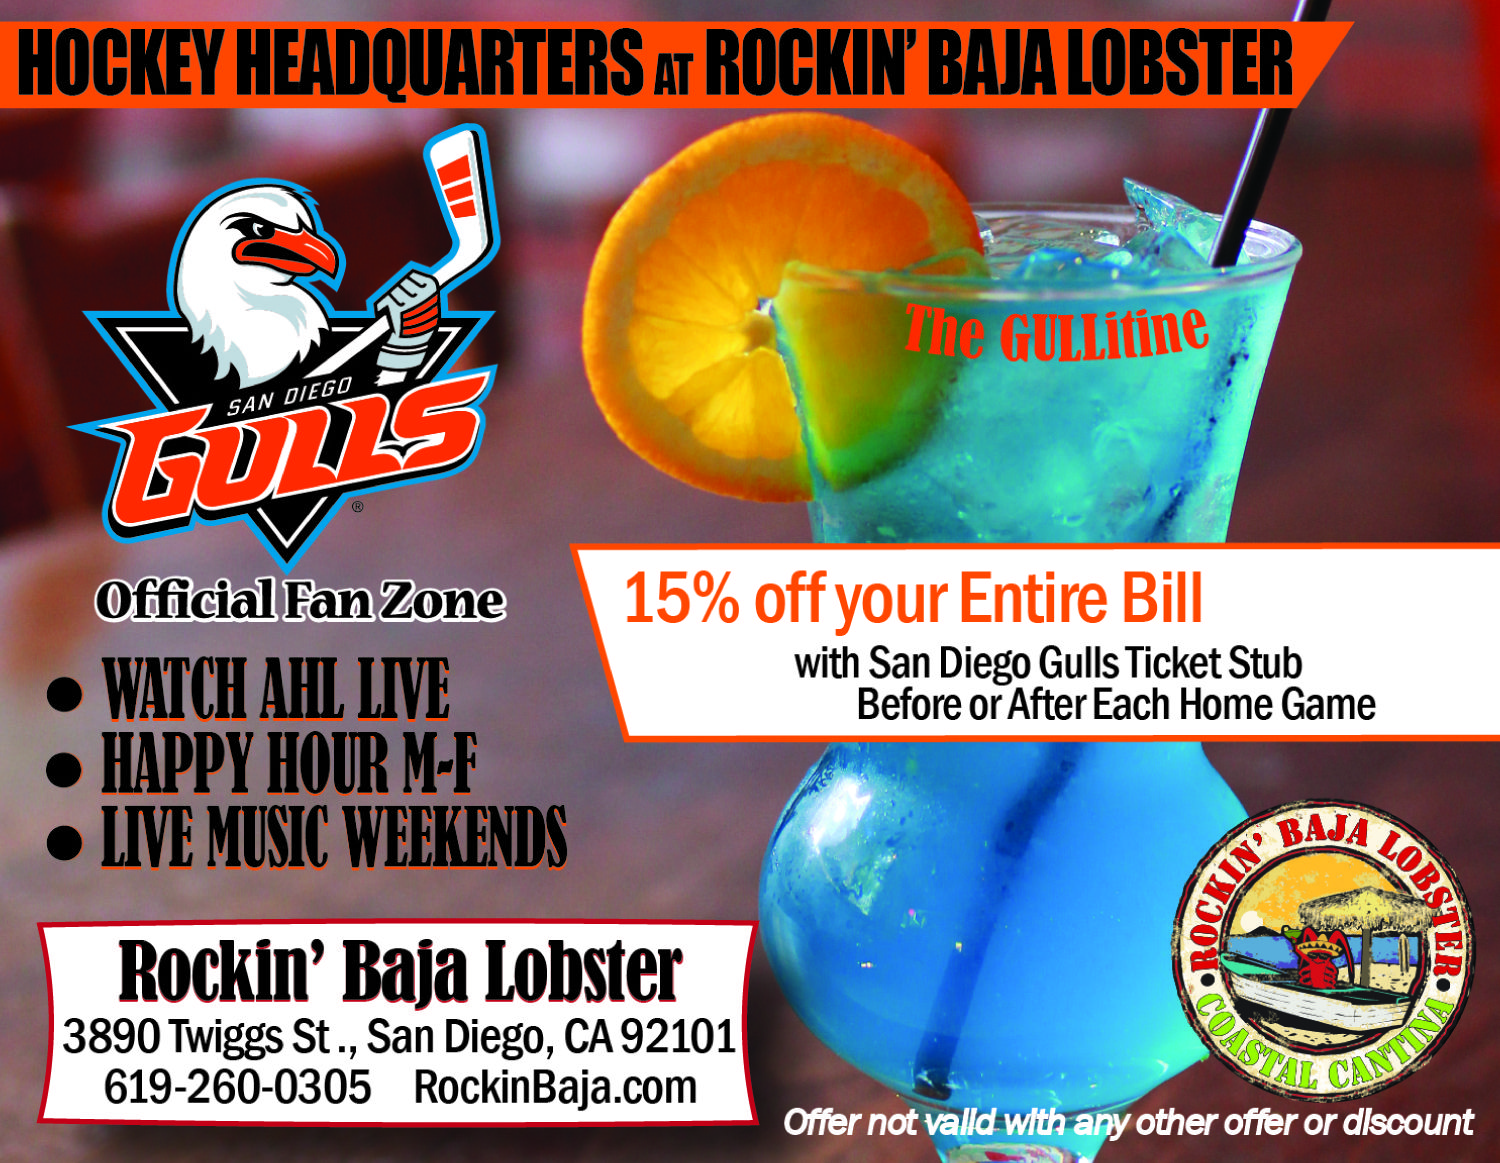 An Image from the Hockey Series to support the Rockin' Baja Lobster sponsorship of the San Diego Gulls